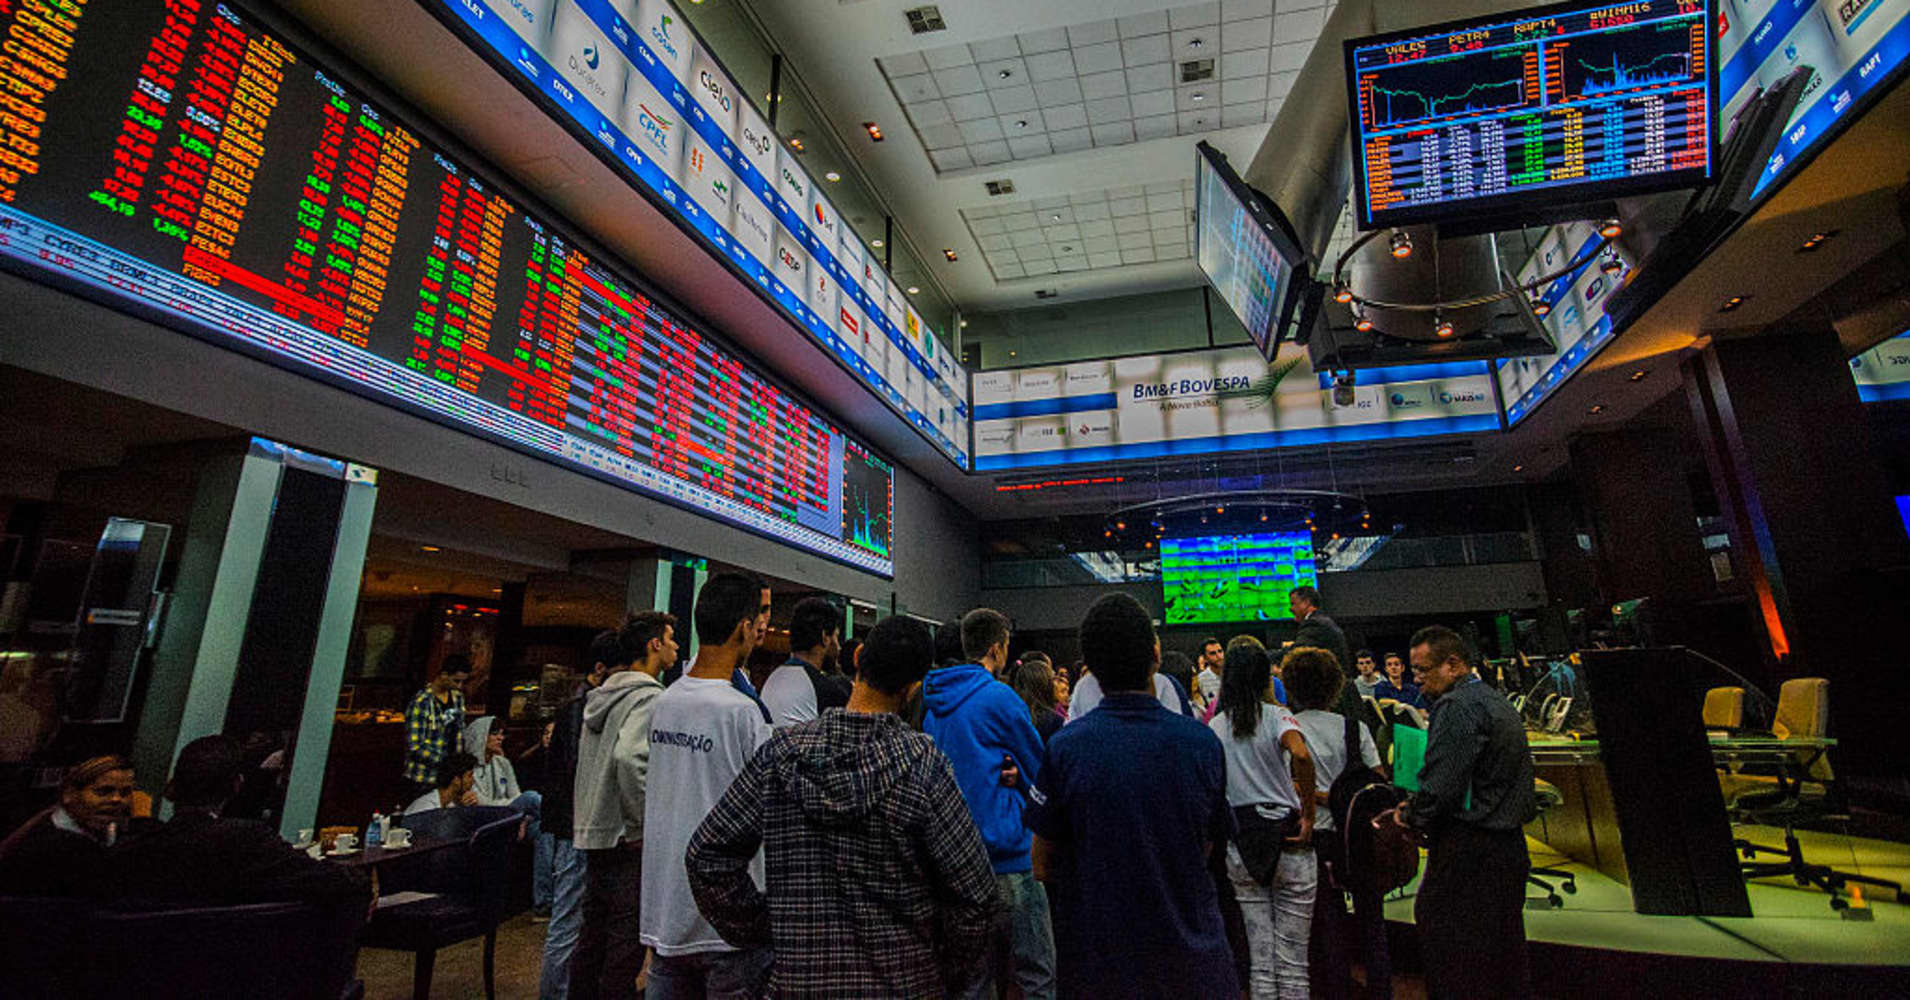 Forget The Us The Stock Market Bargains Are Now